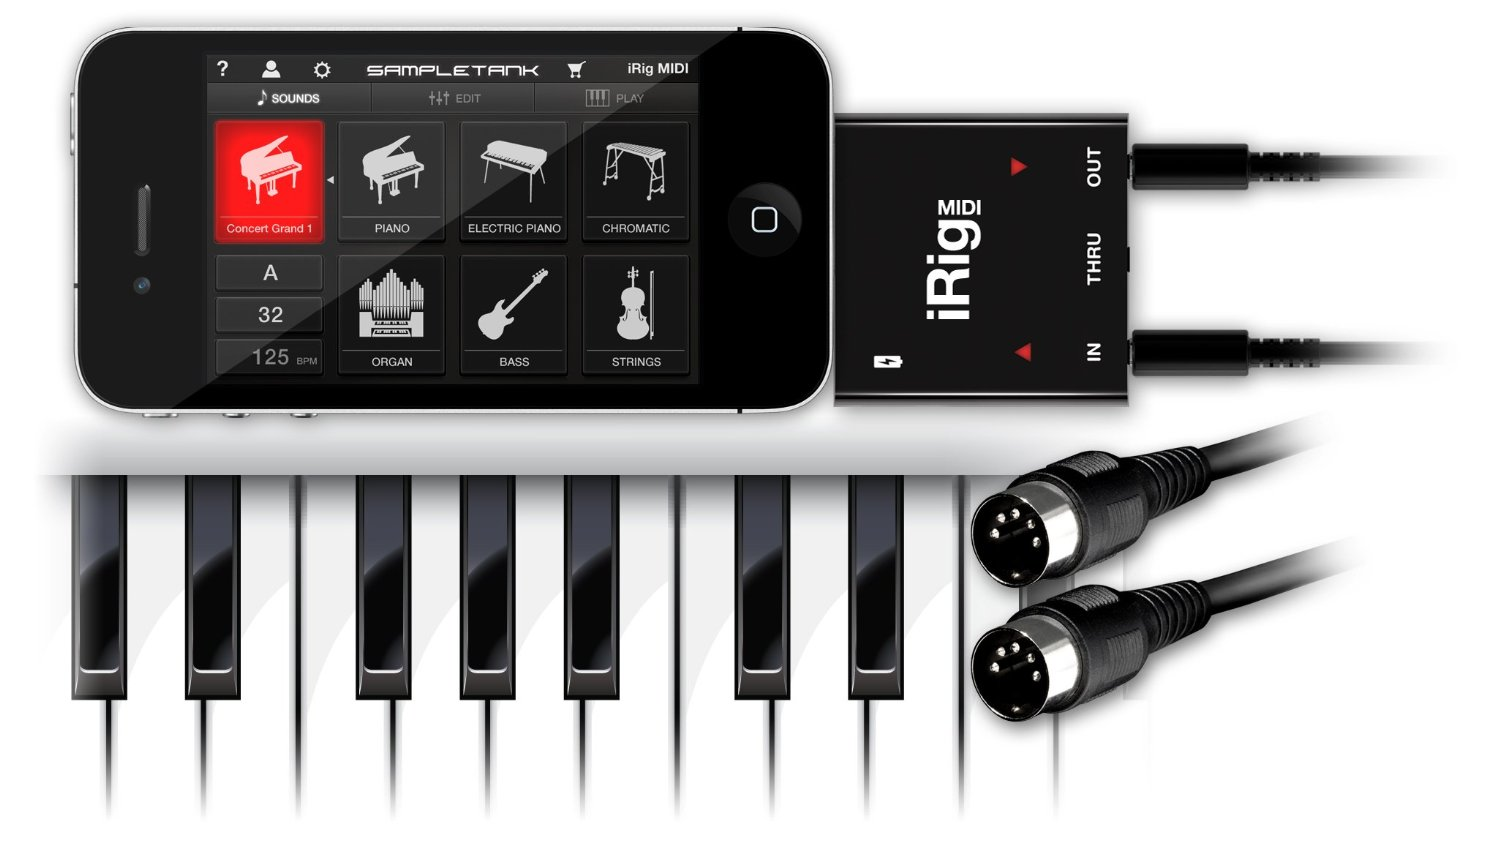 IK Multimedia iRig Midi for iPhone/iPod touch/iPad